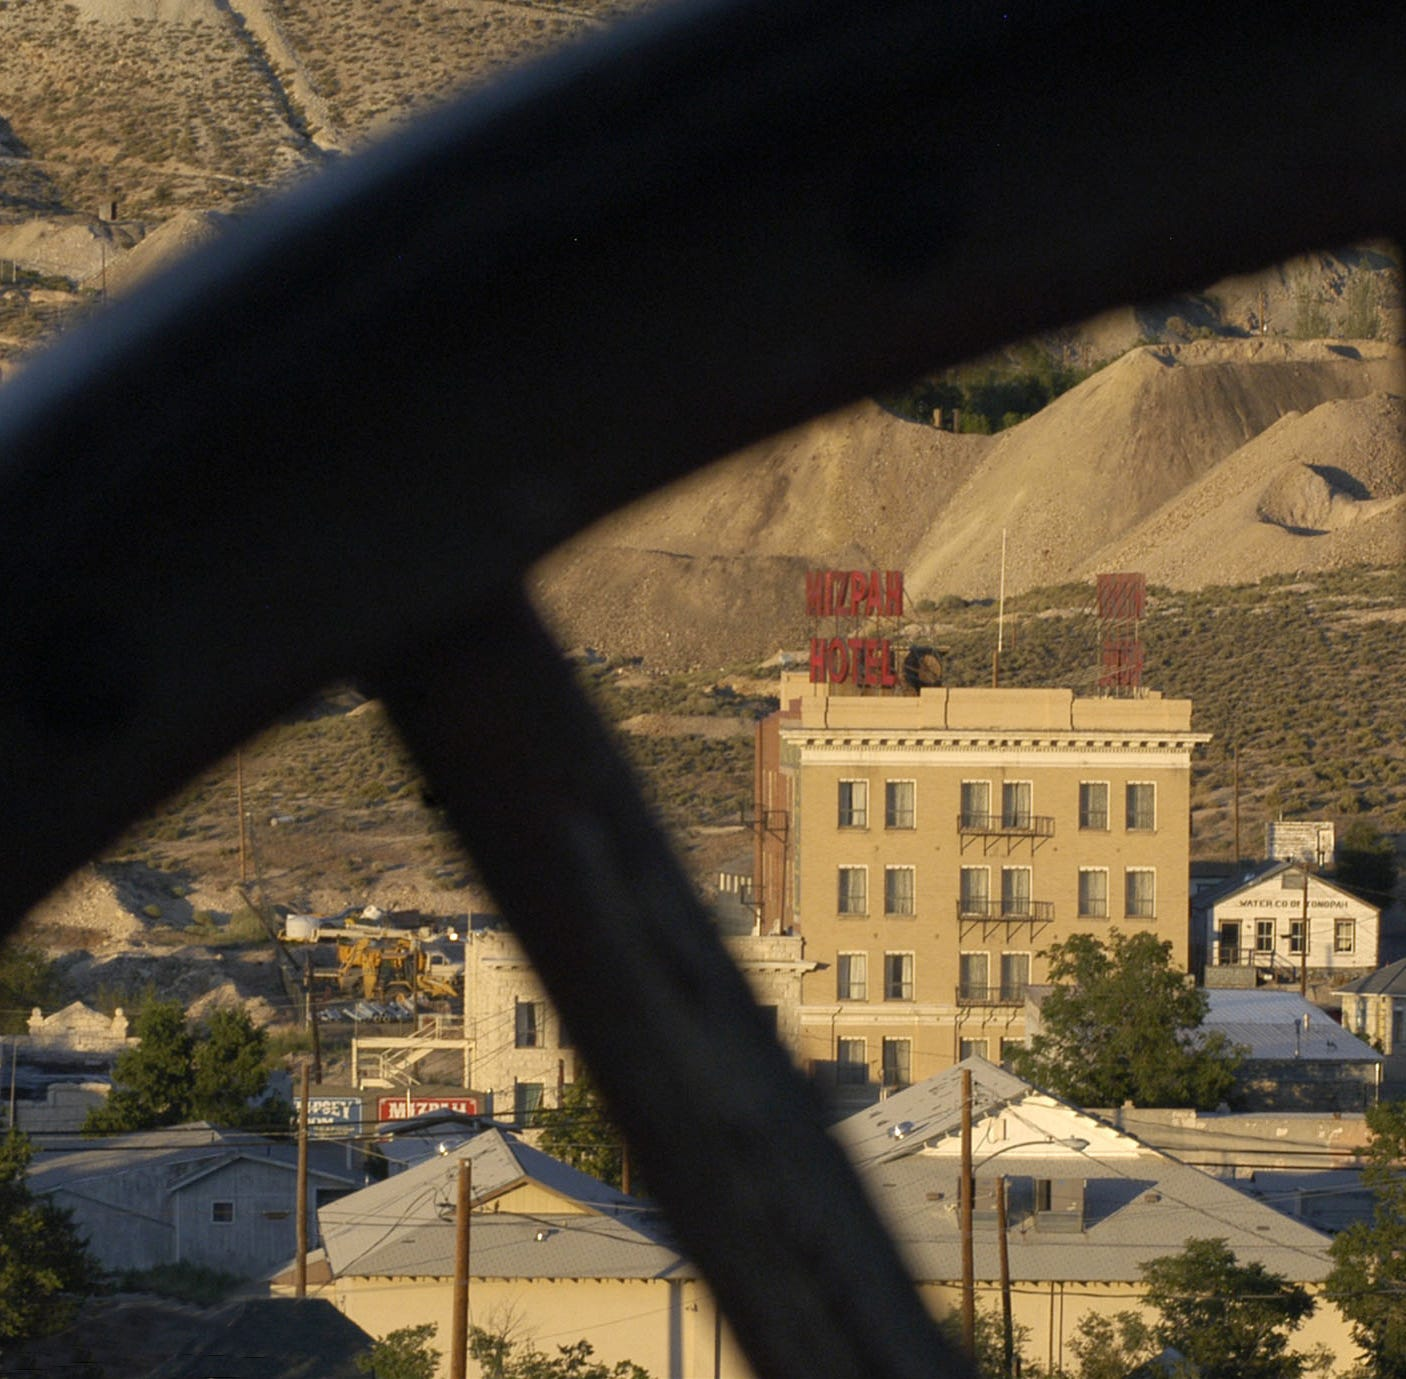 Mizpah Hotel in Tonopah is the 'most haunted' in America